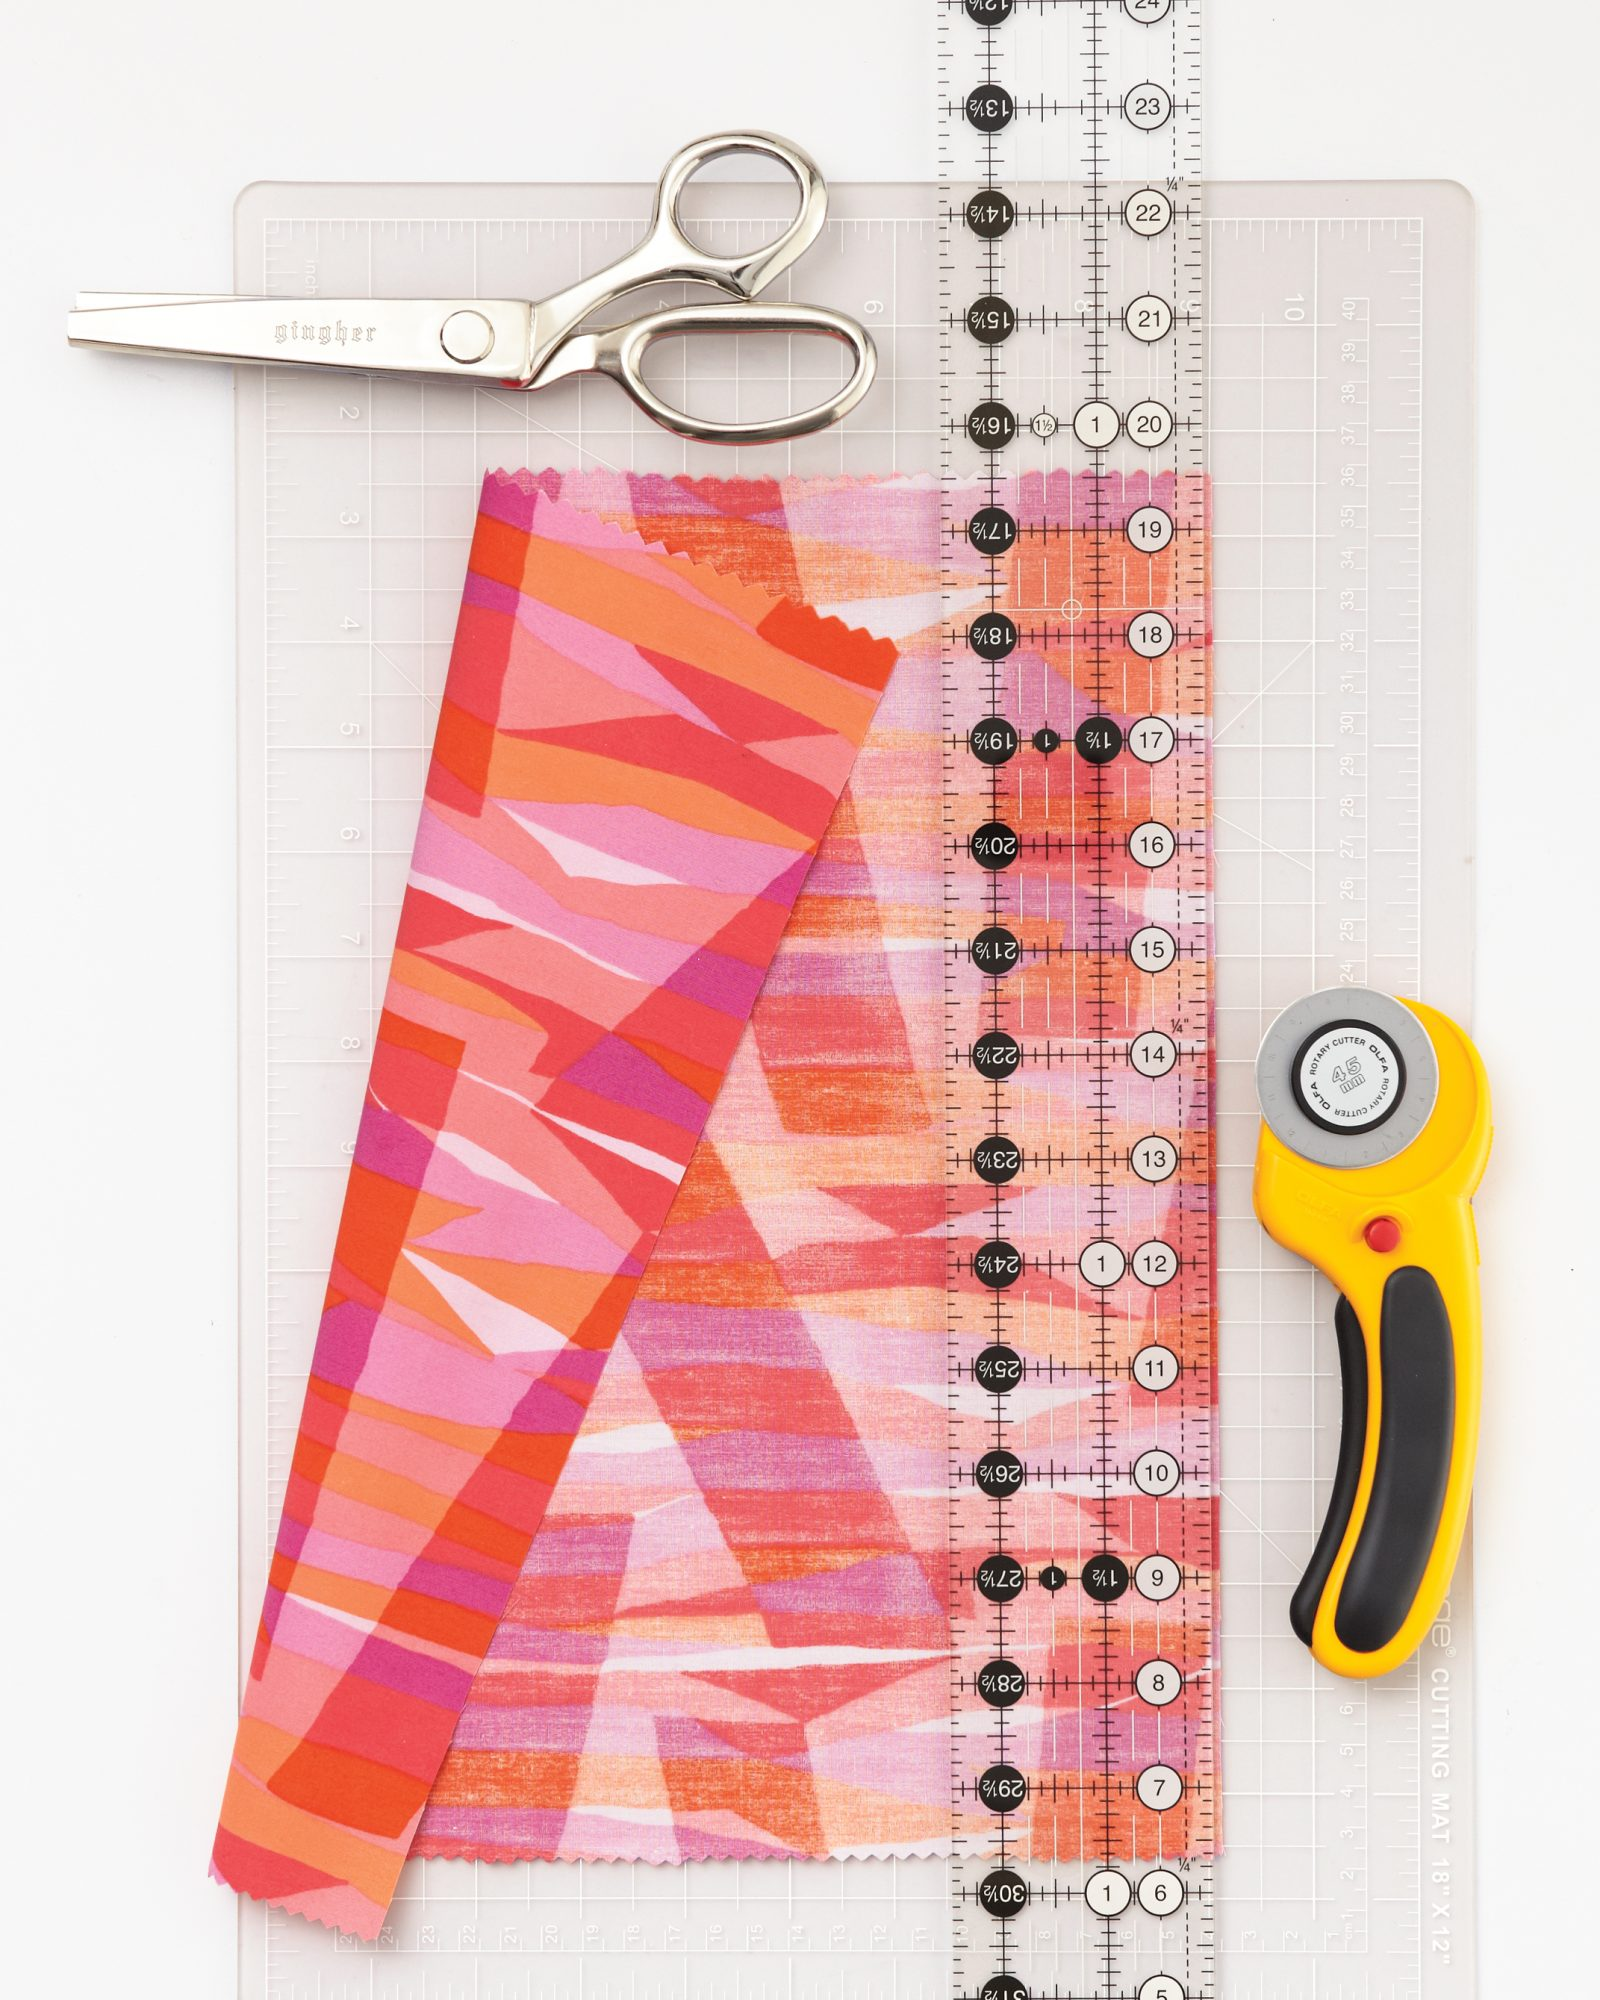 diy-tools-of-the-trade-fabric-pouches-114-mwd110941.jpg